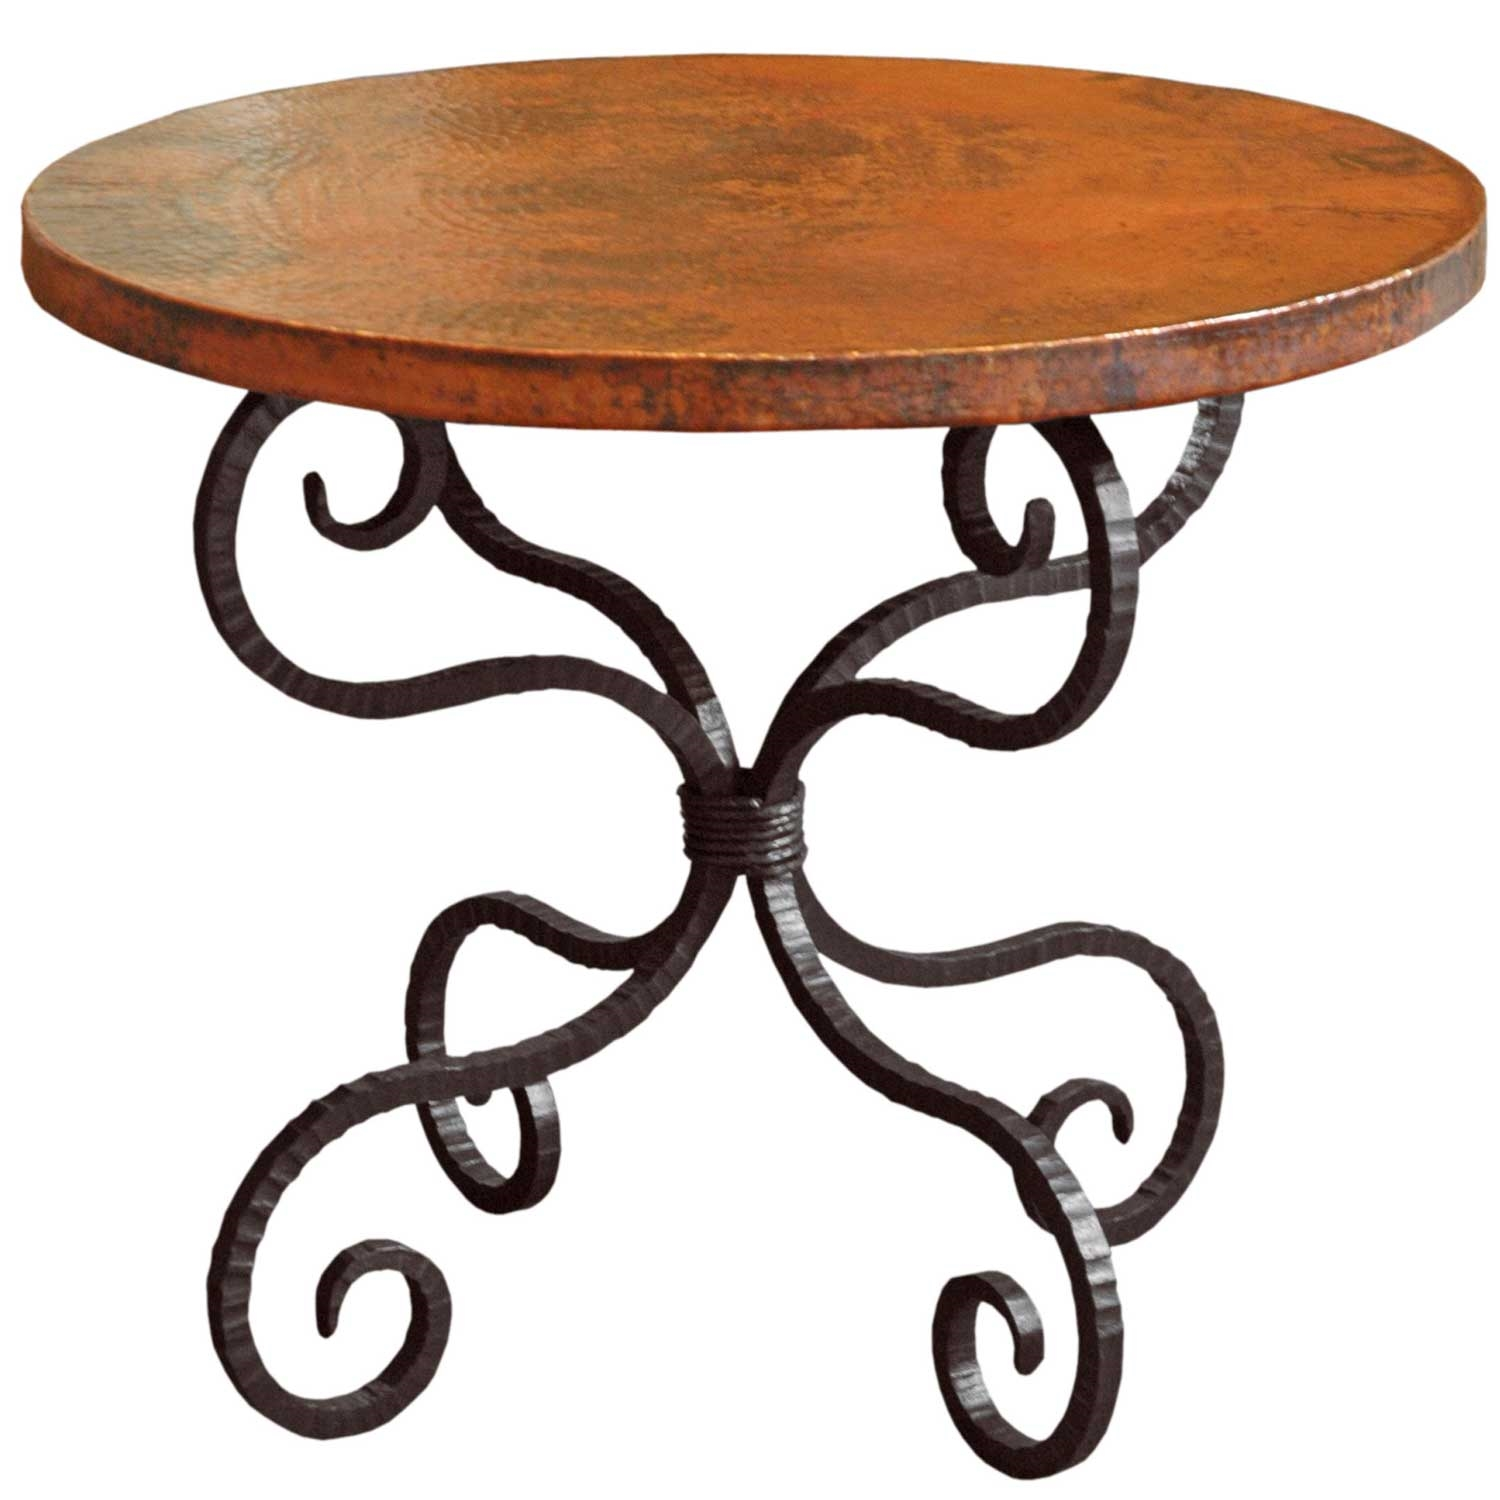 Copper Top Kitchen Table Alexander Wrought Iron End Table With 30in Round Top Timeless